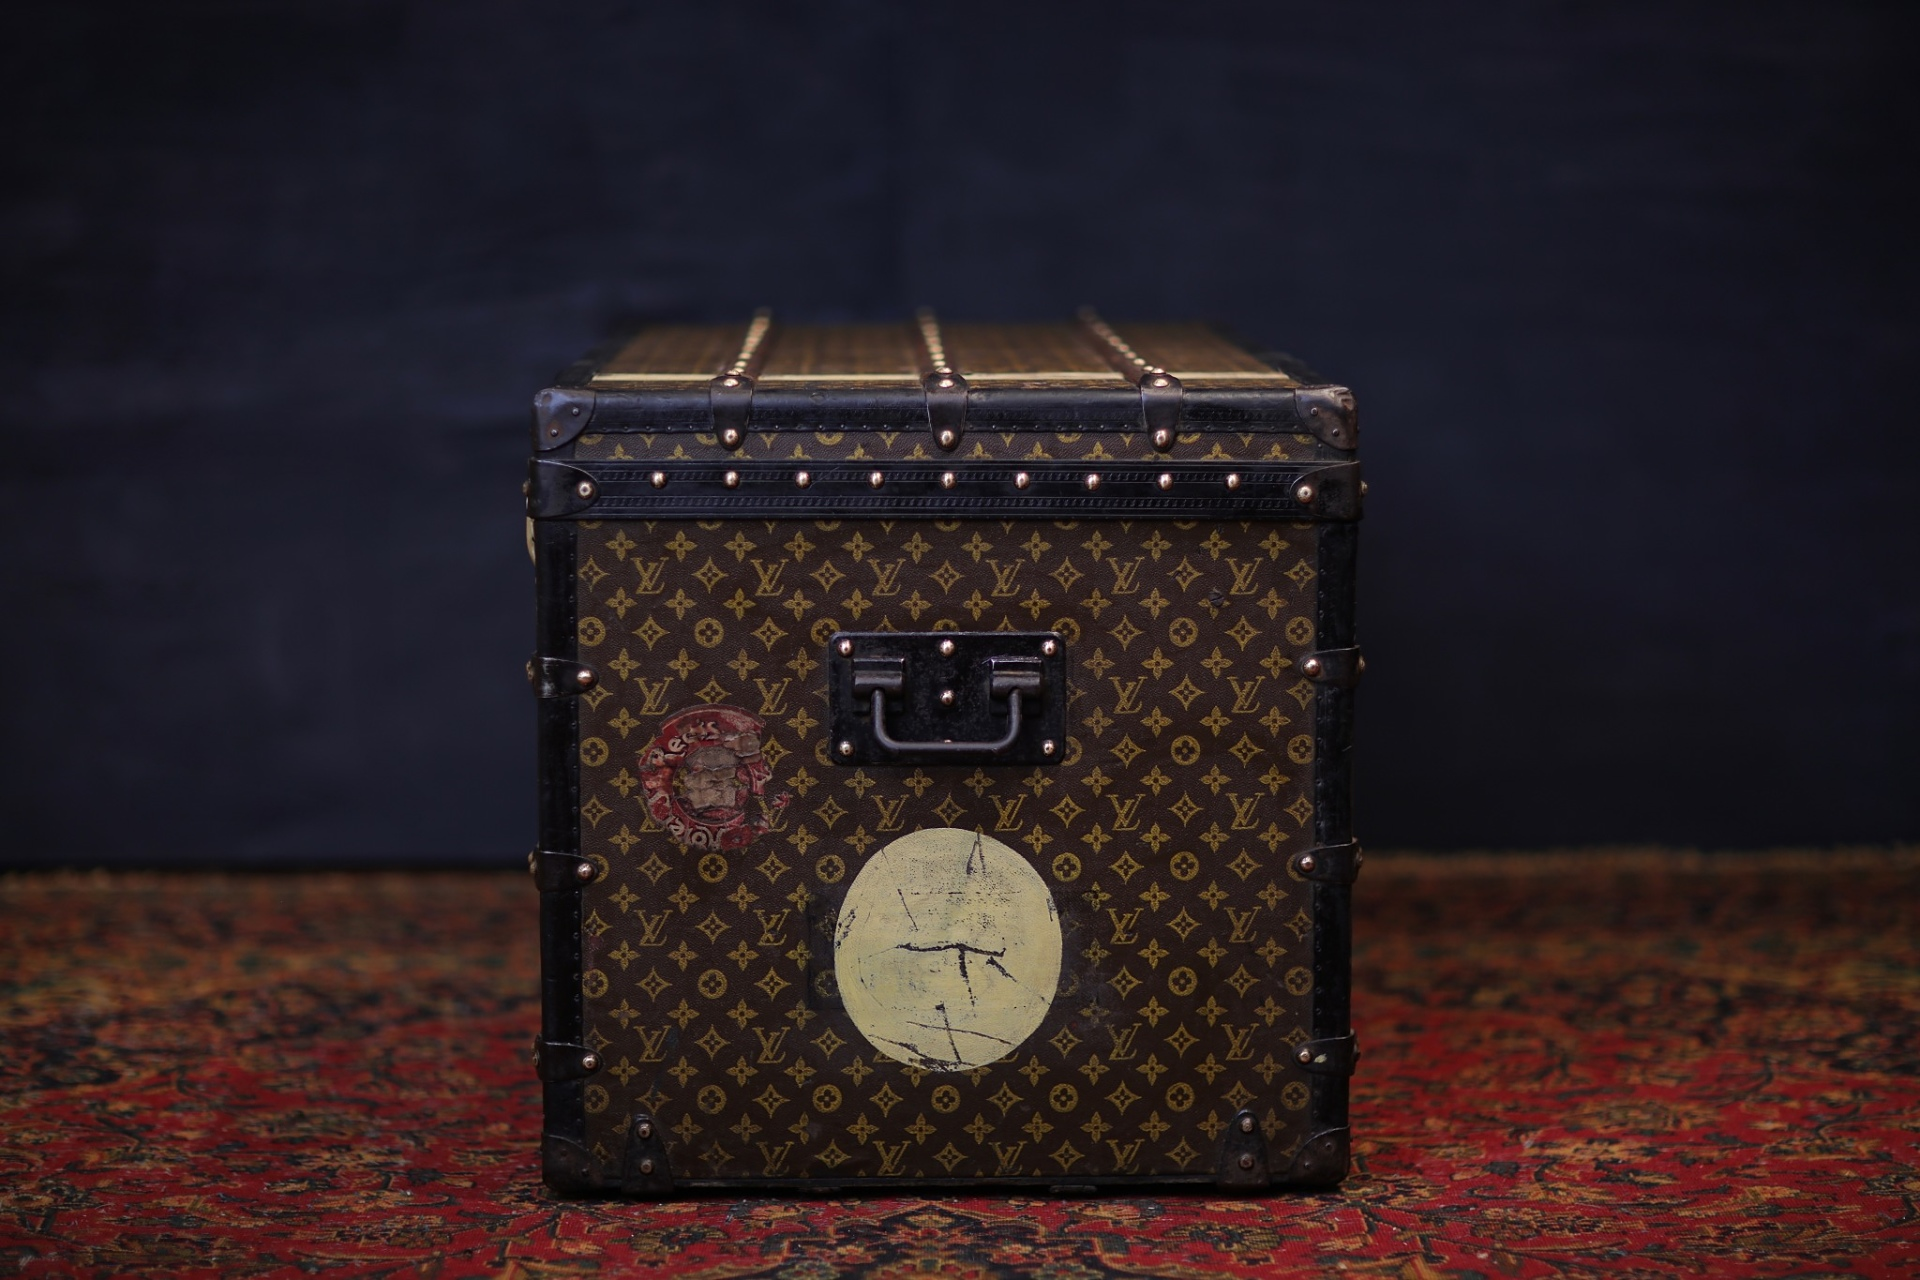 Louis Vuitton Steamer Trunk The Trunk